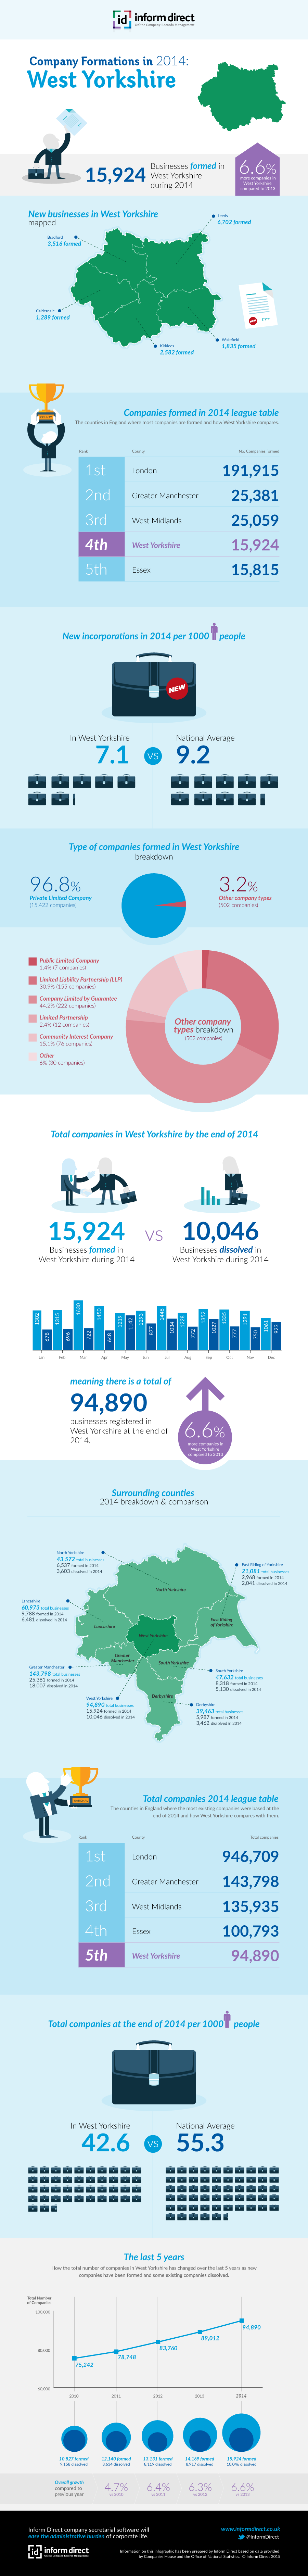 Inform Direct - Company Formations in West Yorkshire 2014 Infographic